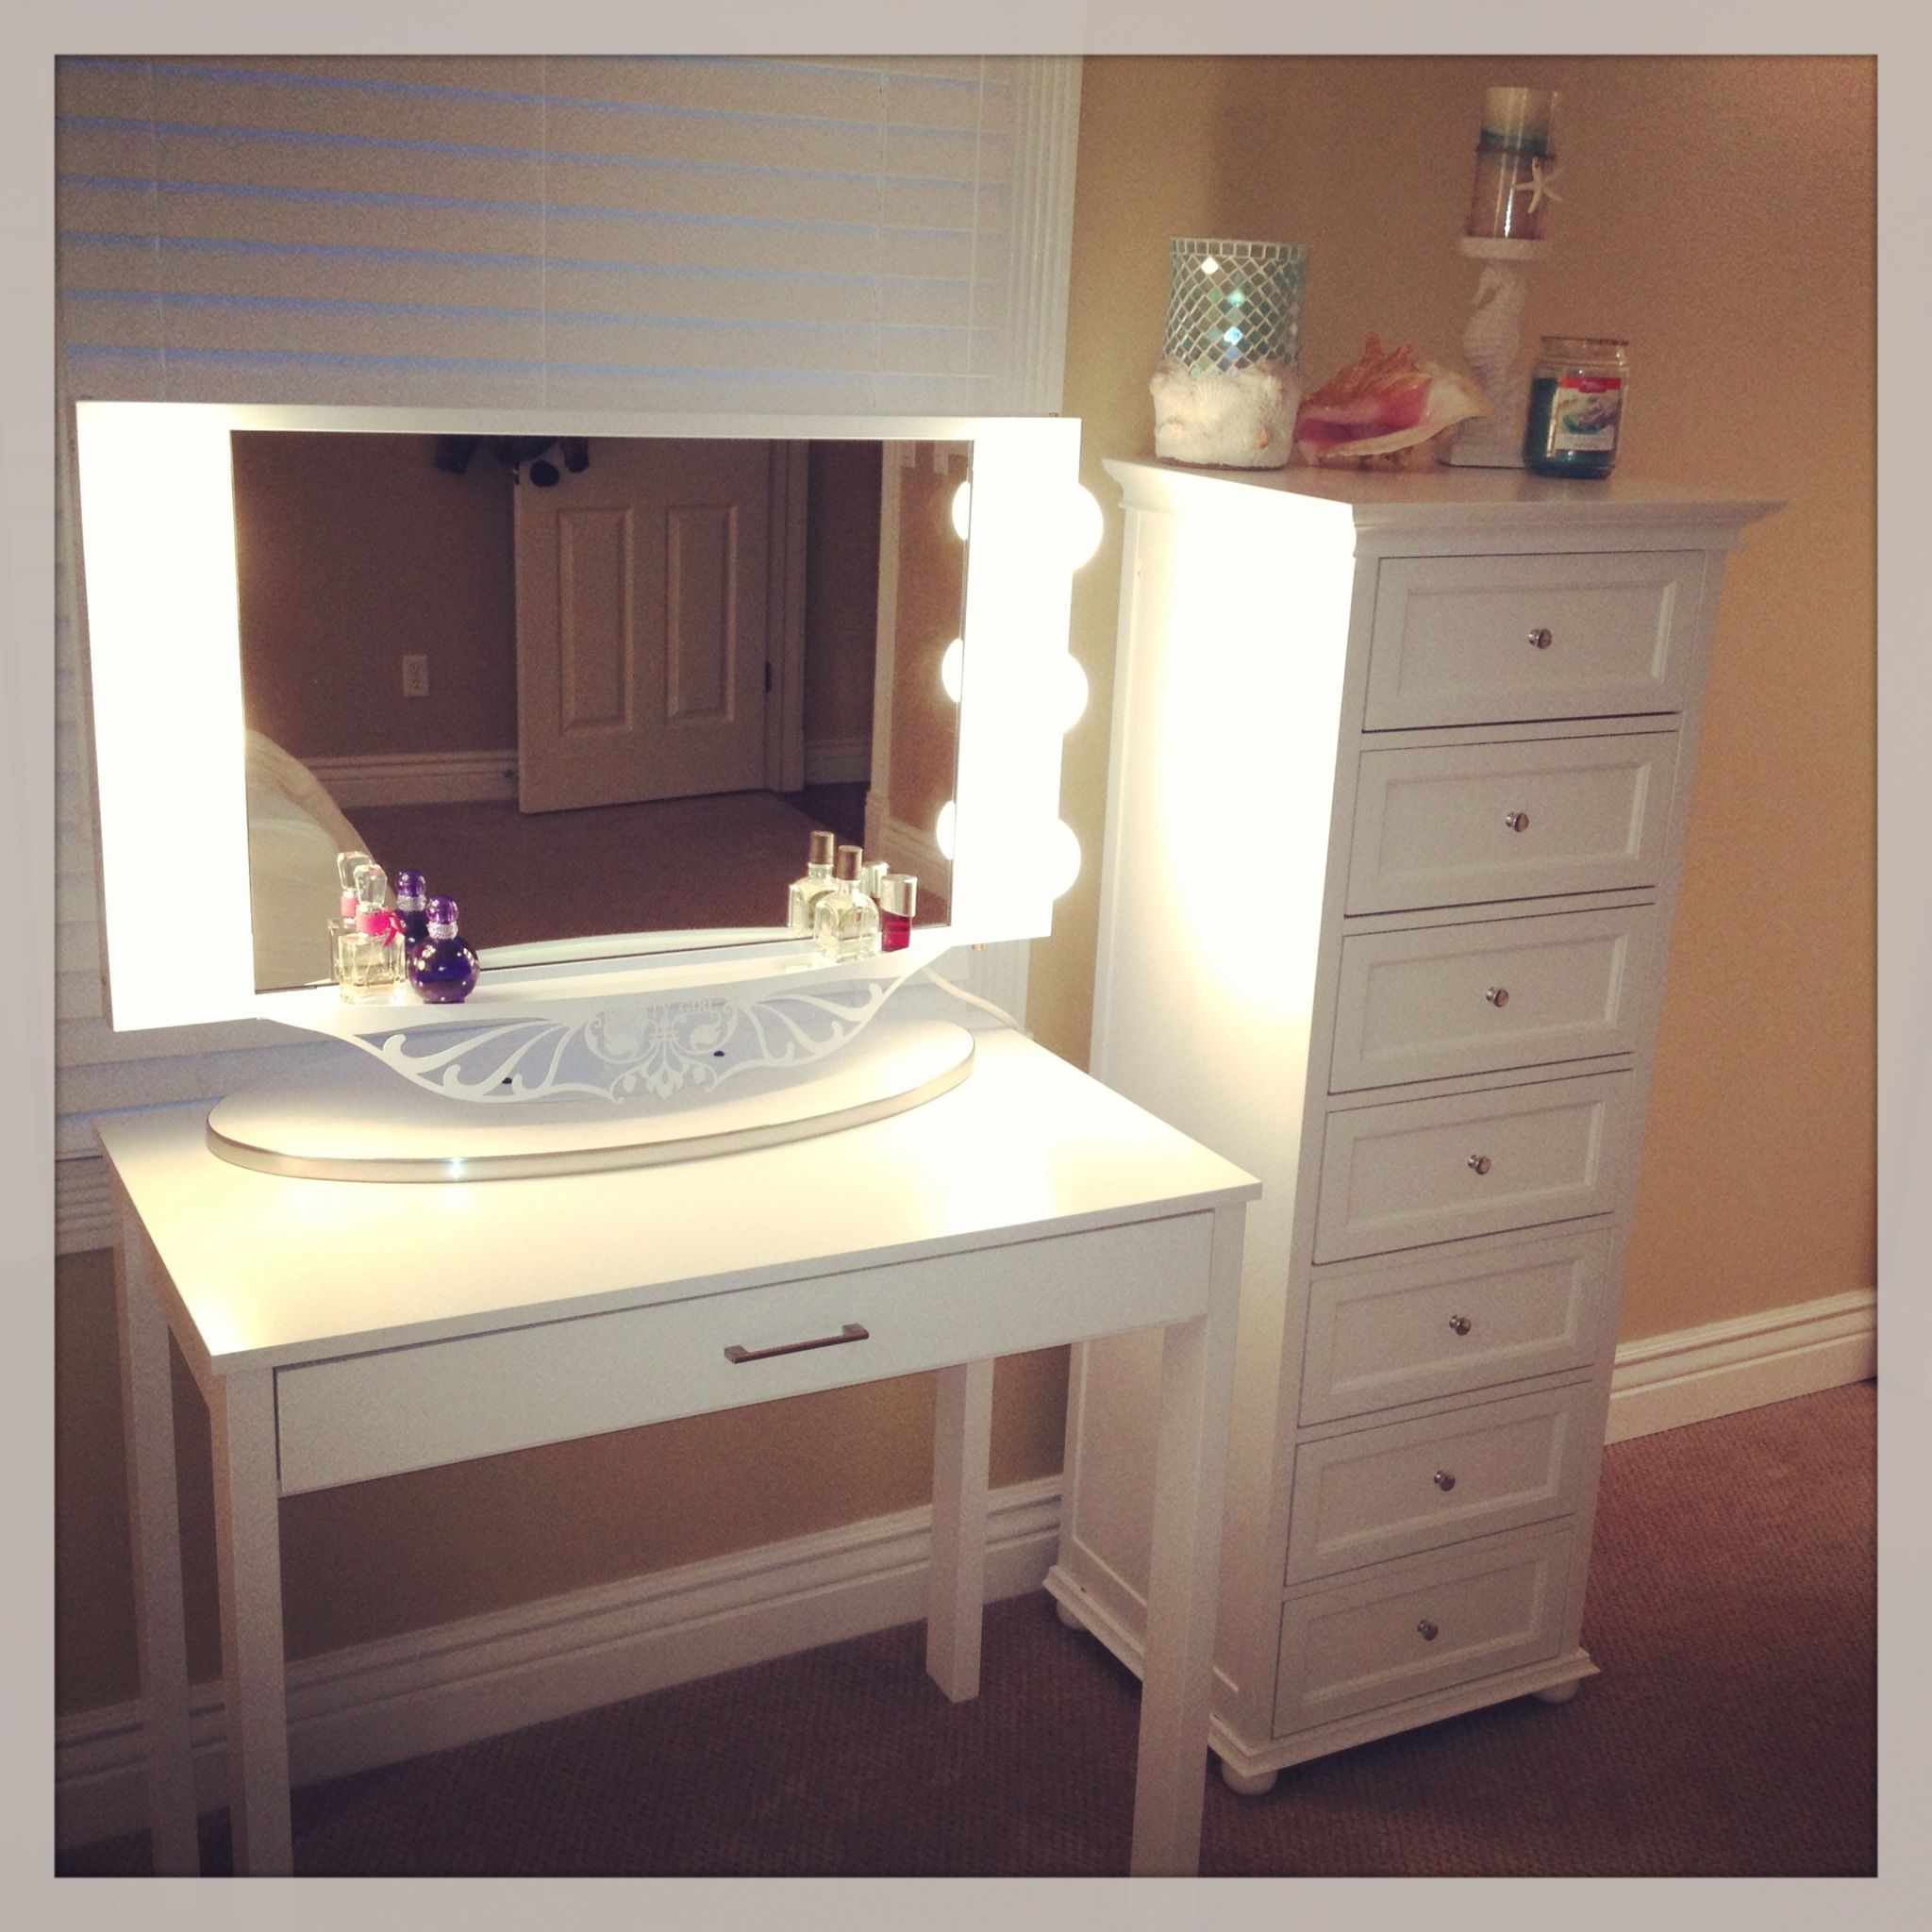 Makeup desk for a small area   desk from Target   drawers from Home  Decorators. Makeup desk for a small area   desk from Target   drawers from